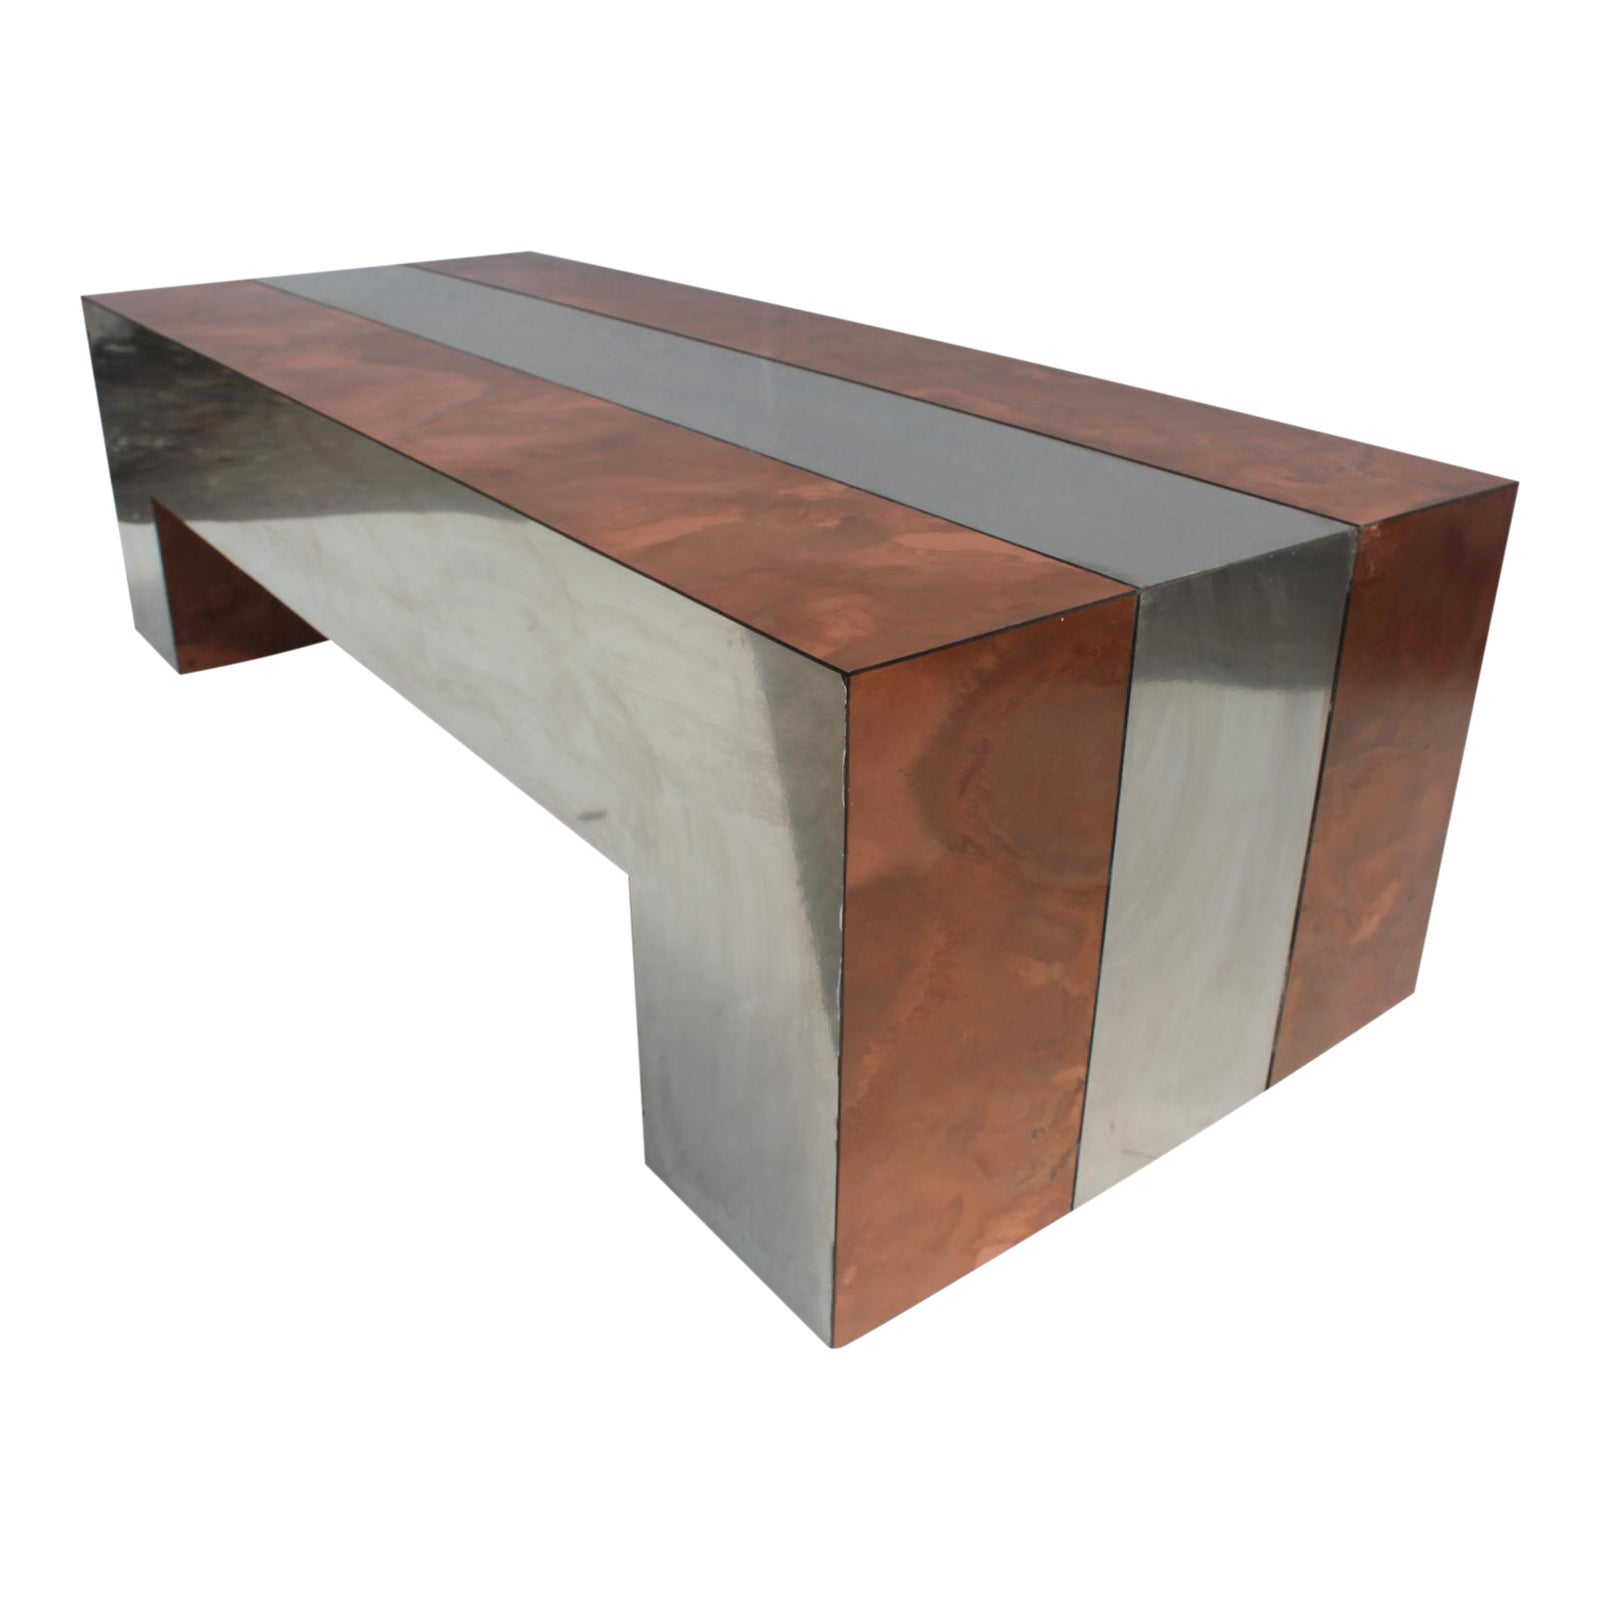 Copper Top Rectangular Coffee Table: Paul Evans Style Chrome & Copper Rectangular Coffee Table